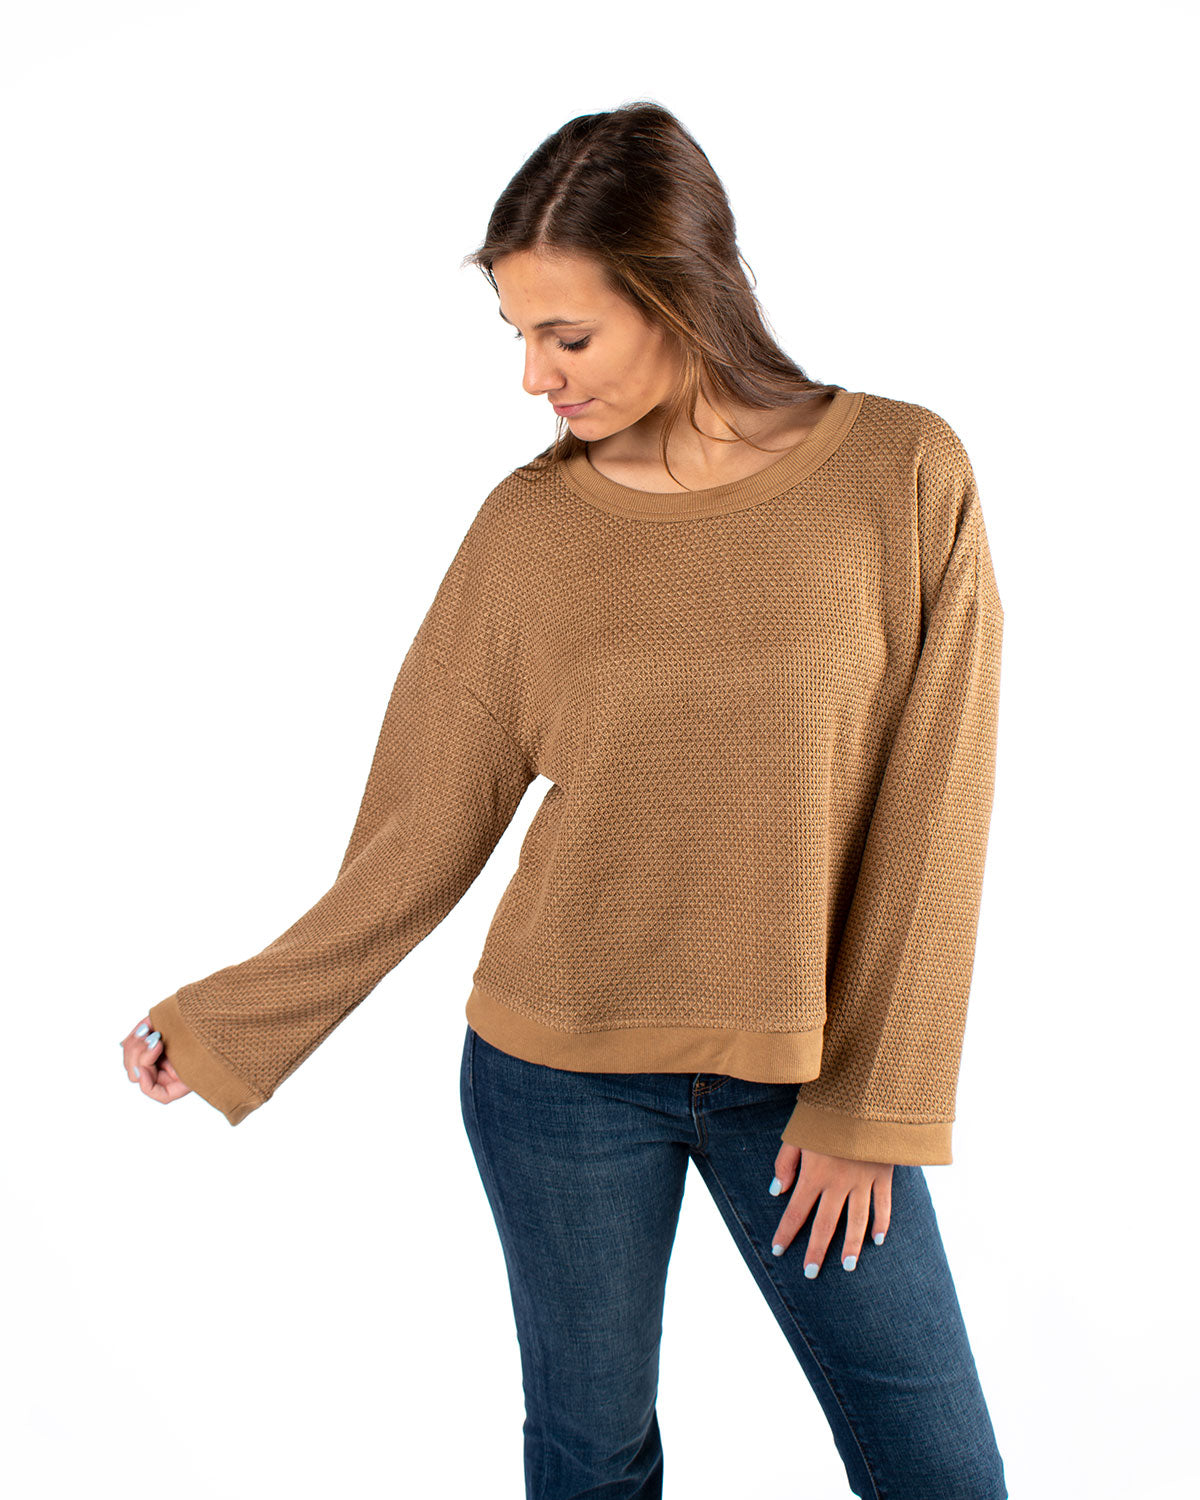 Falon Sweater